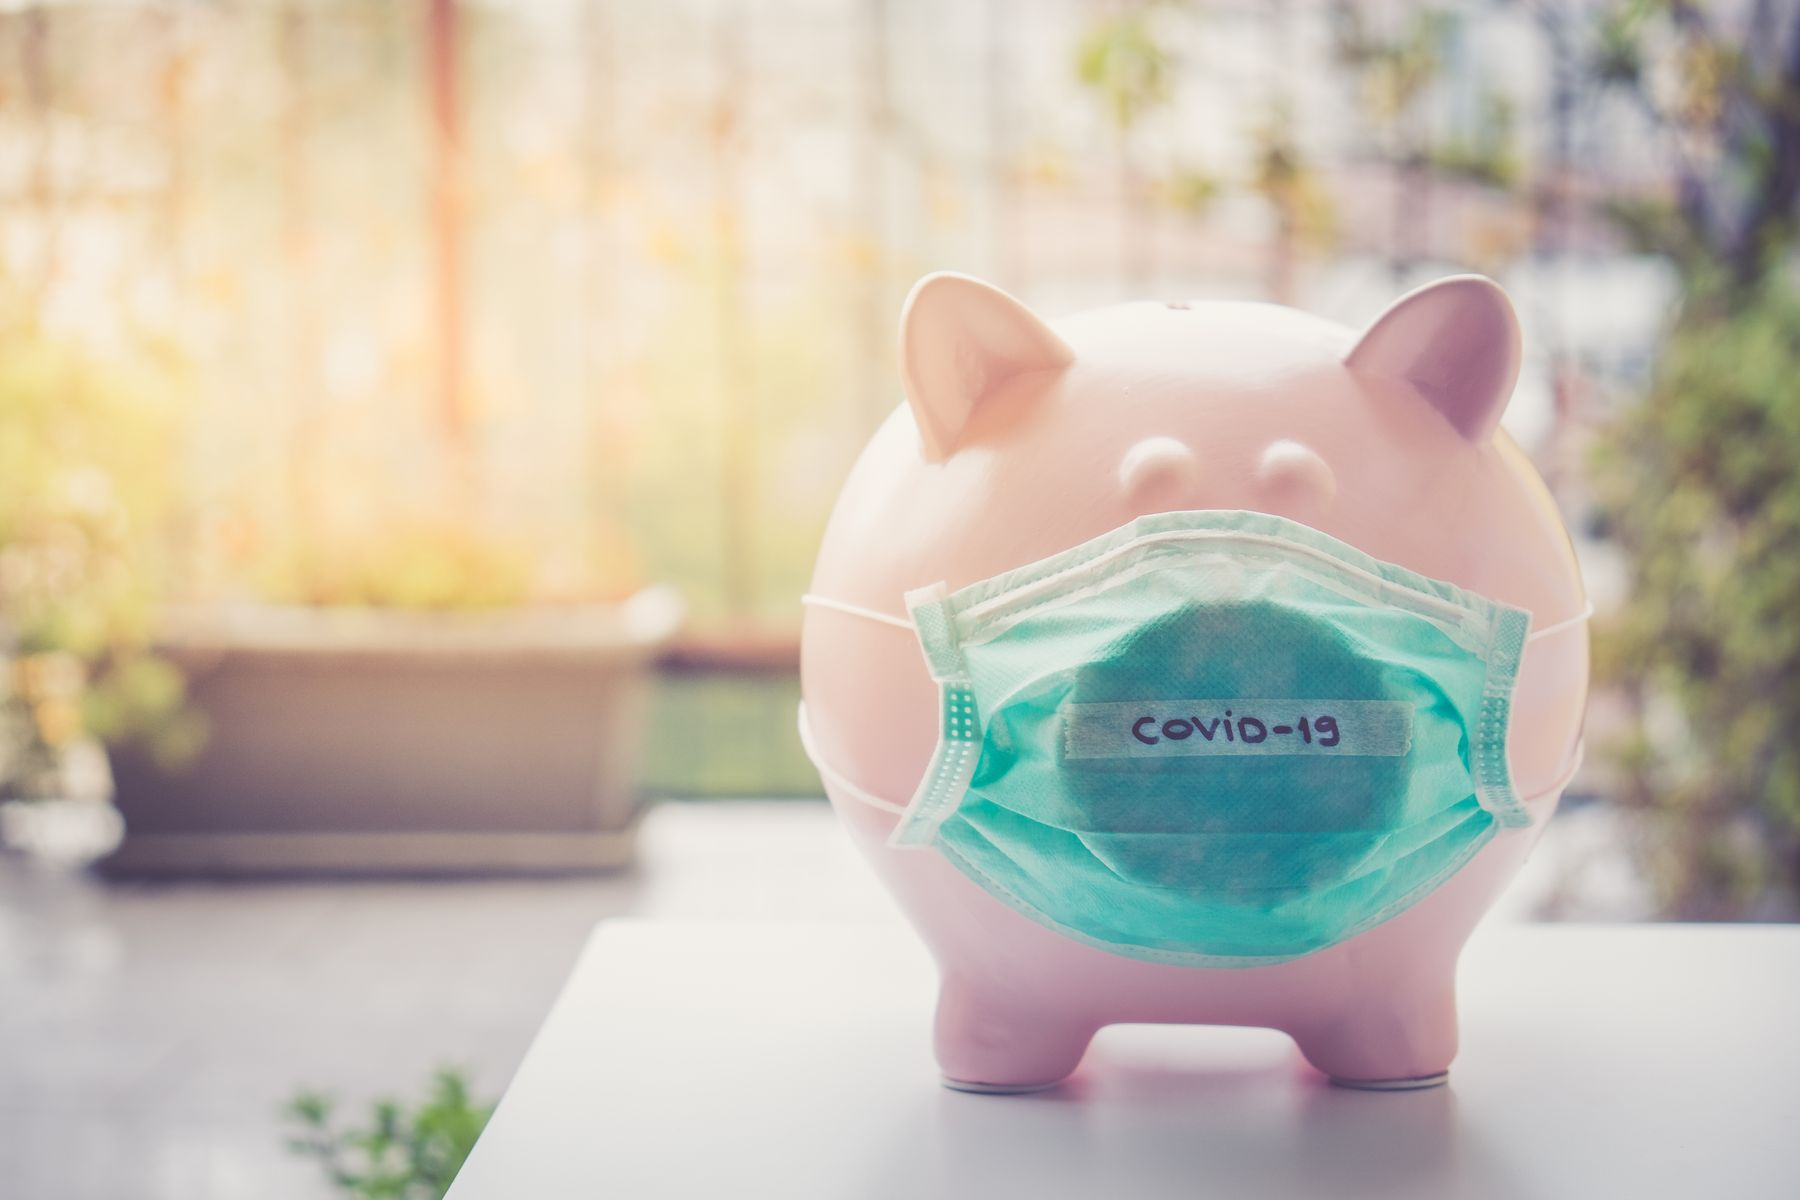 Bankruptcy: A Fresh Start From The Pandemic